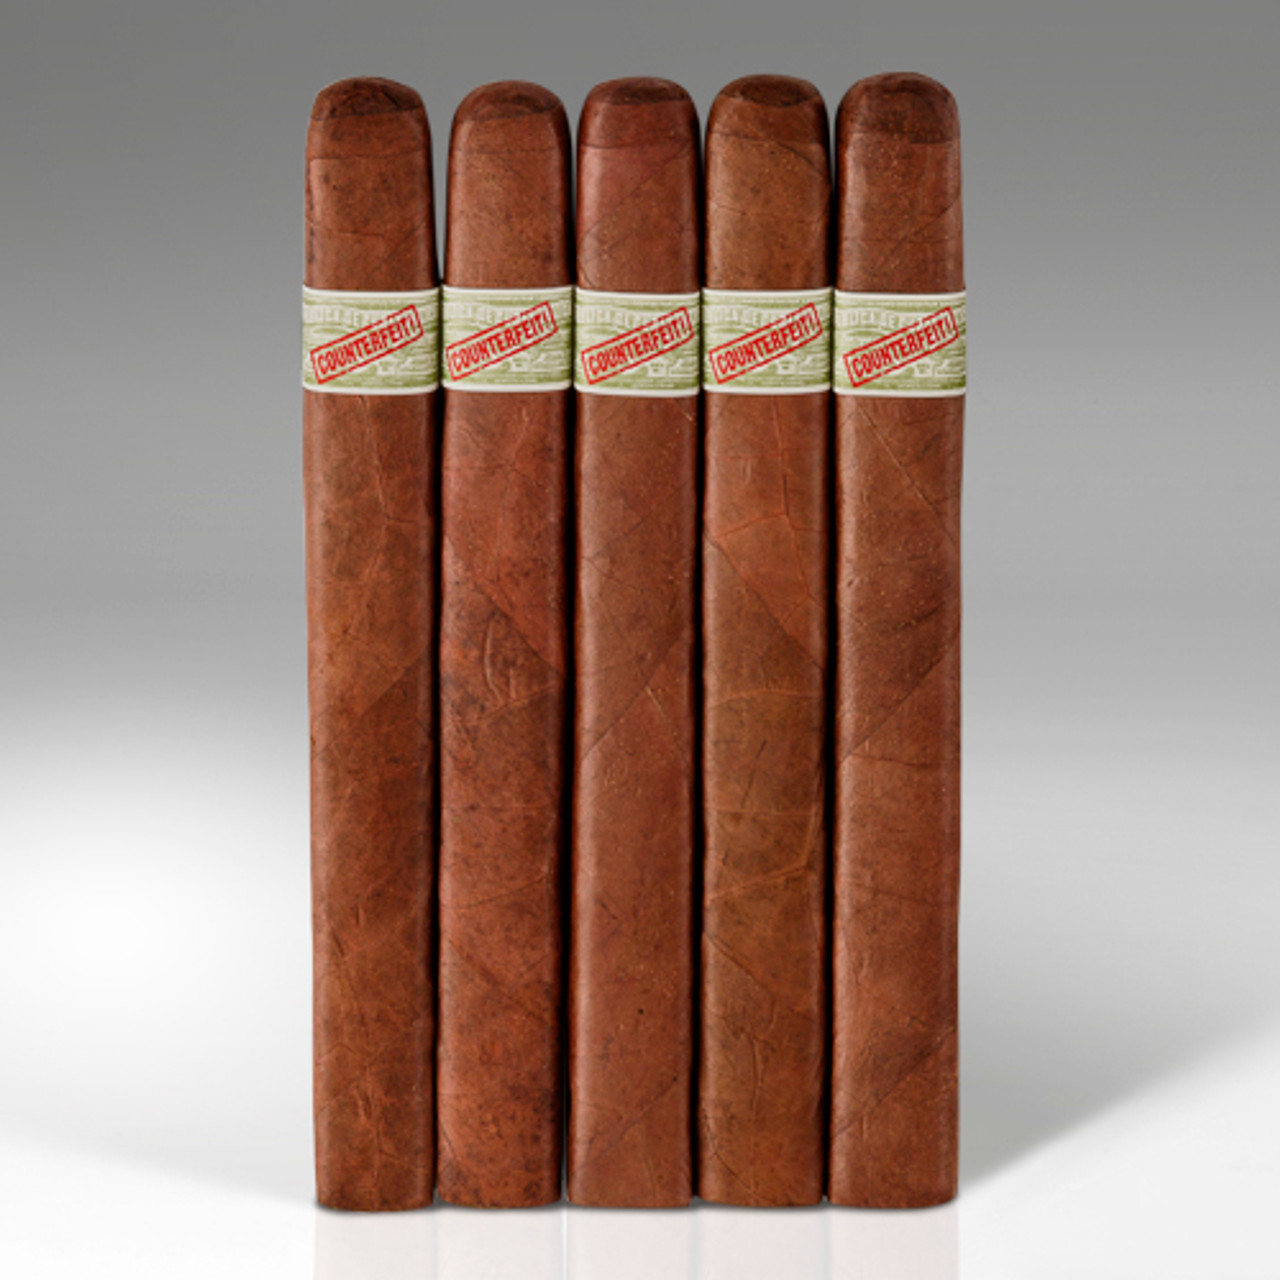 Genuine Counterfeit Cubans Churchill Cigars - 7 x 52 (Pack of 5)